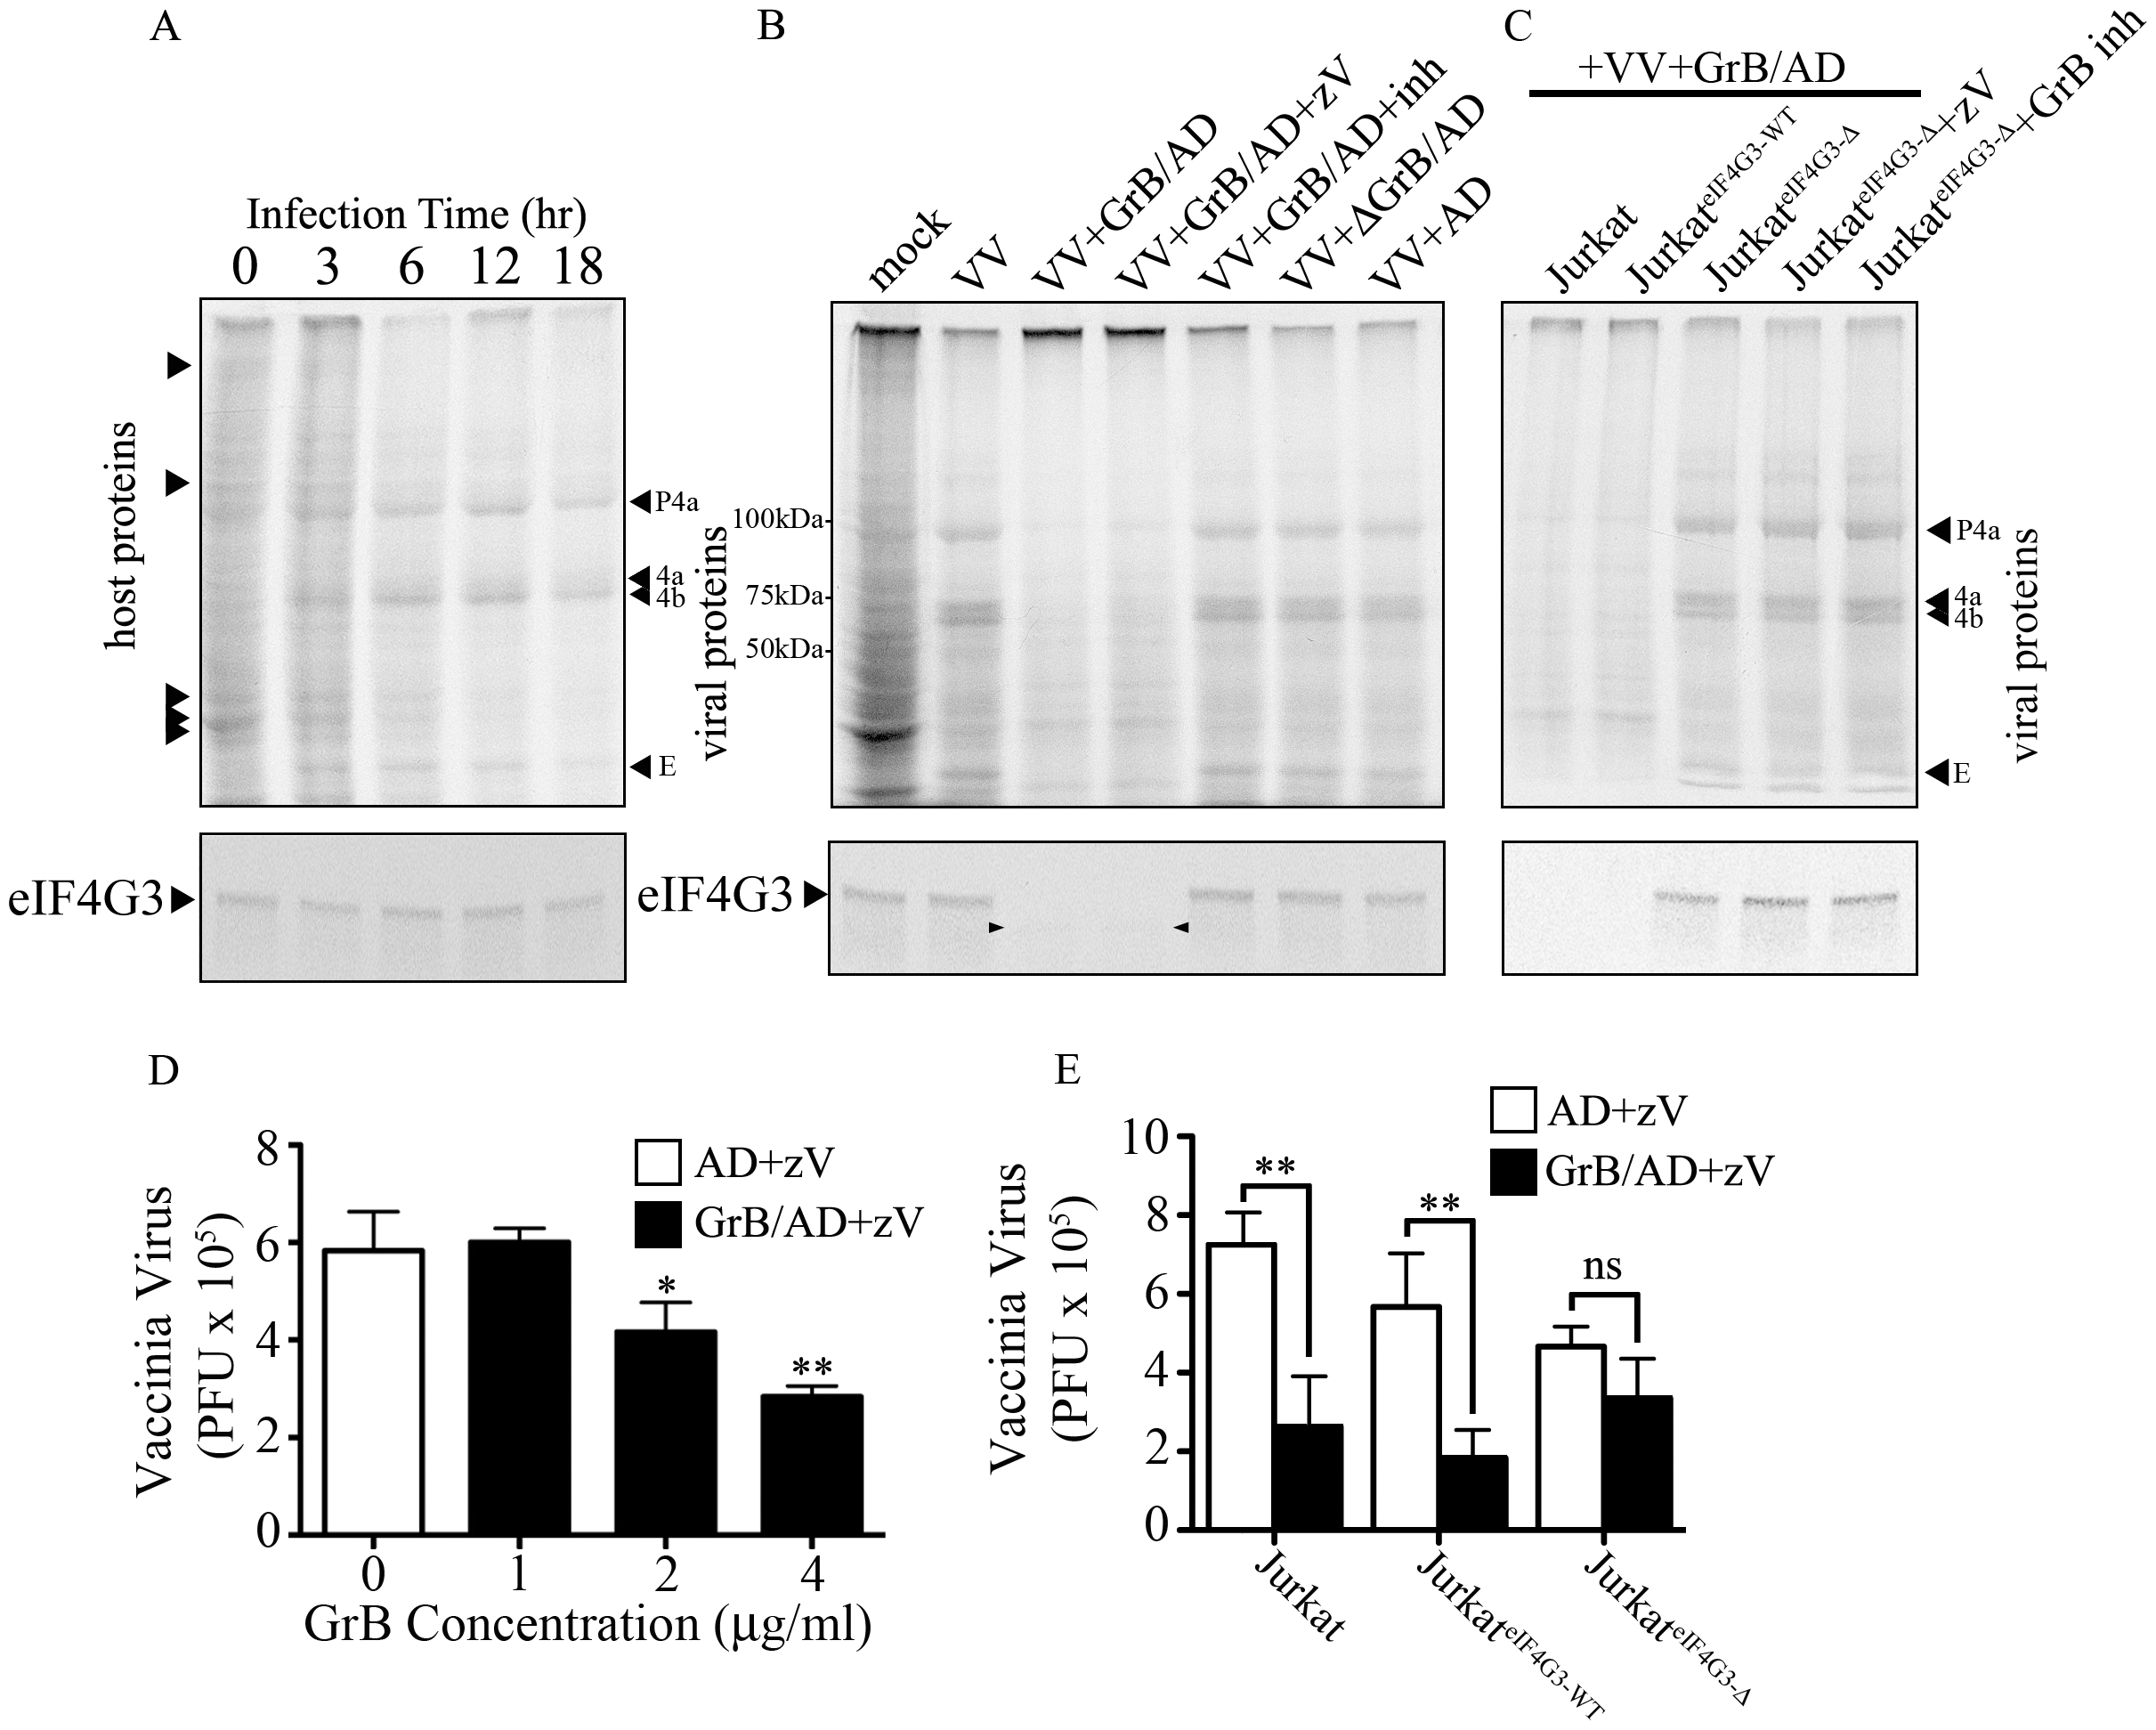 Inhibition of VV production by GrB is mediated by cleavage of eIF4G3.